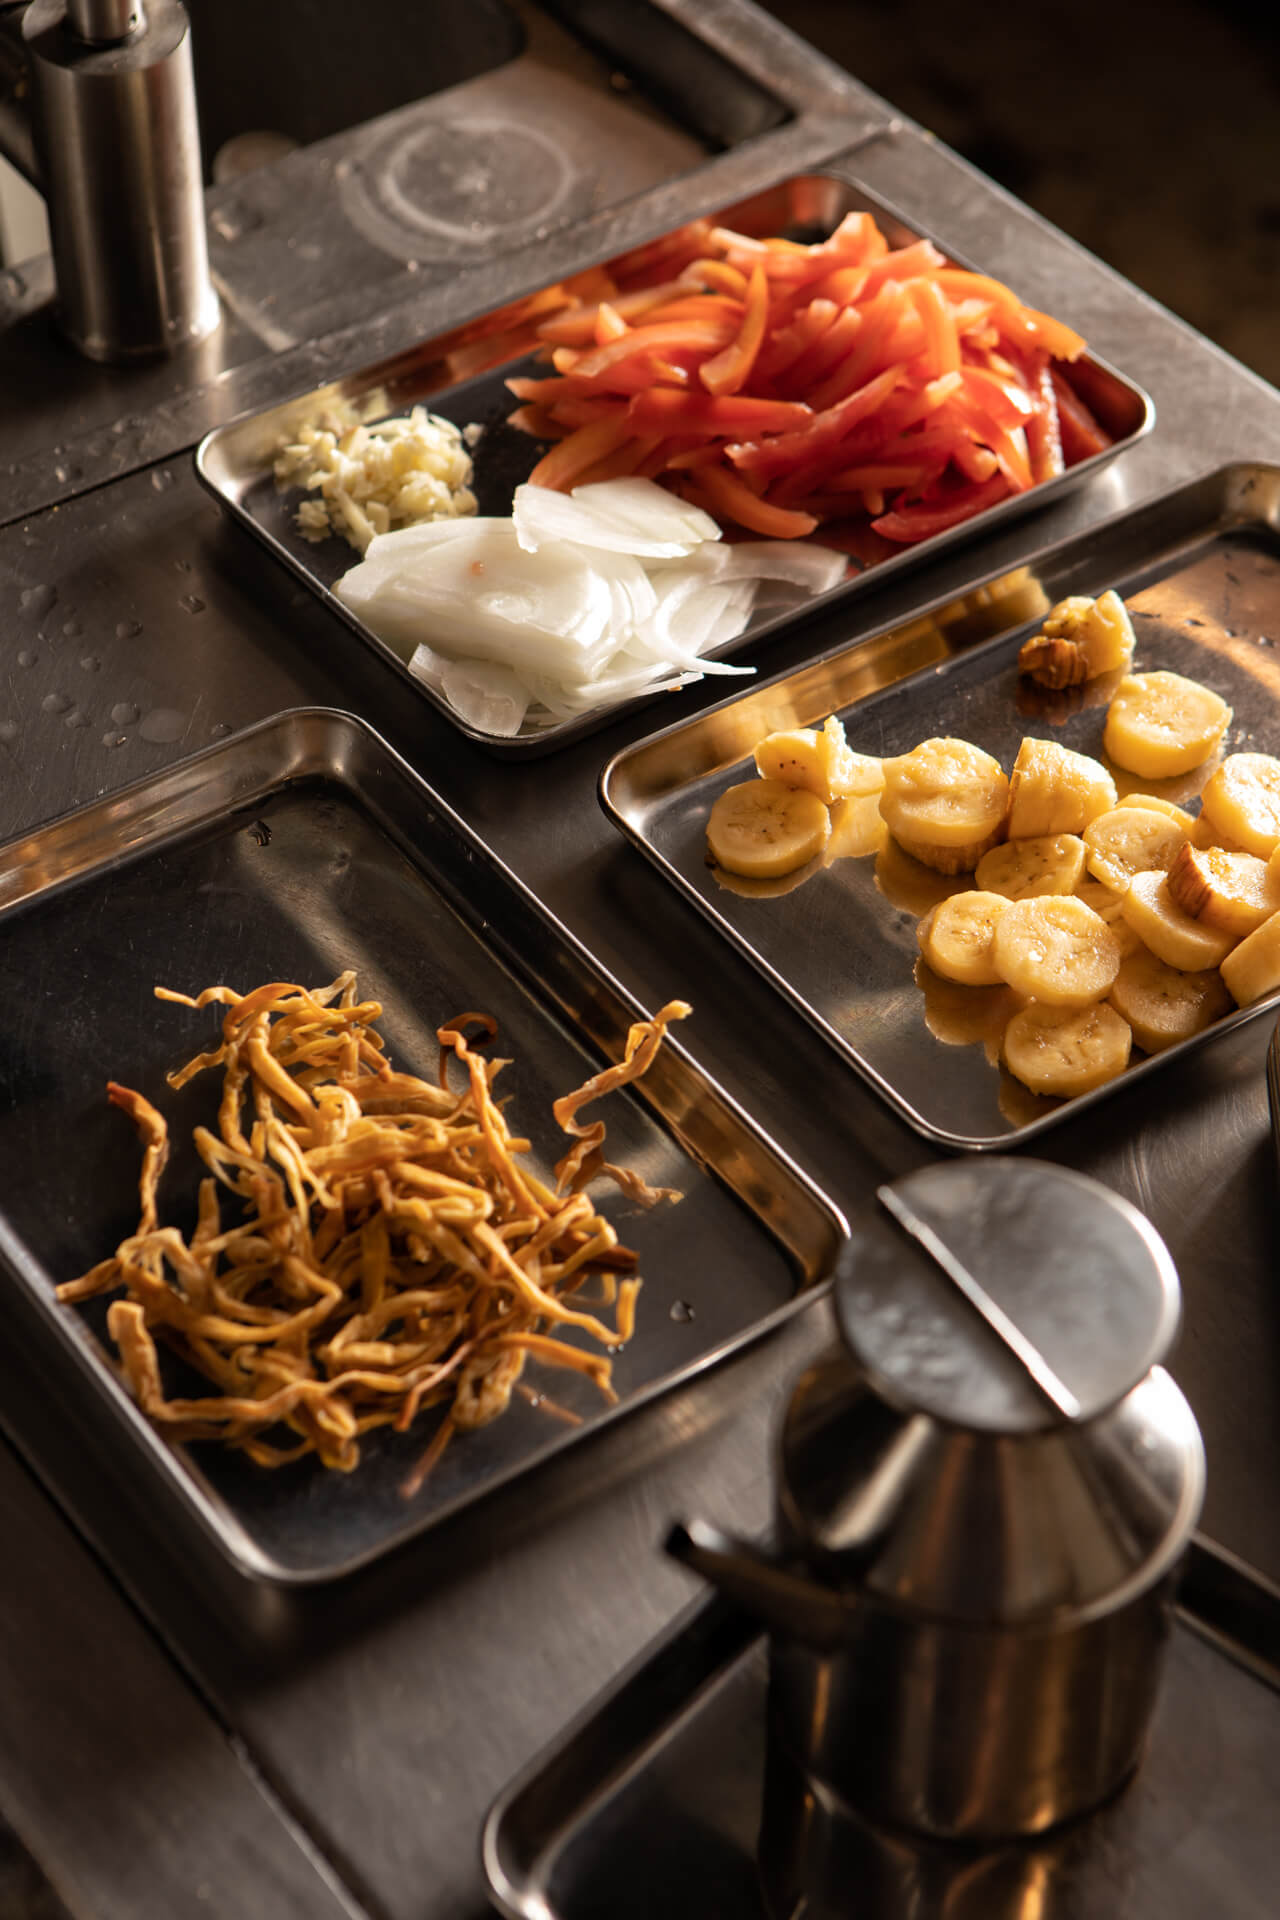 Fresh ingredients prepared at the Toyo Eatery kitchen